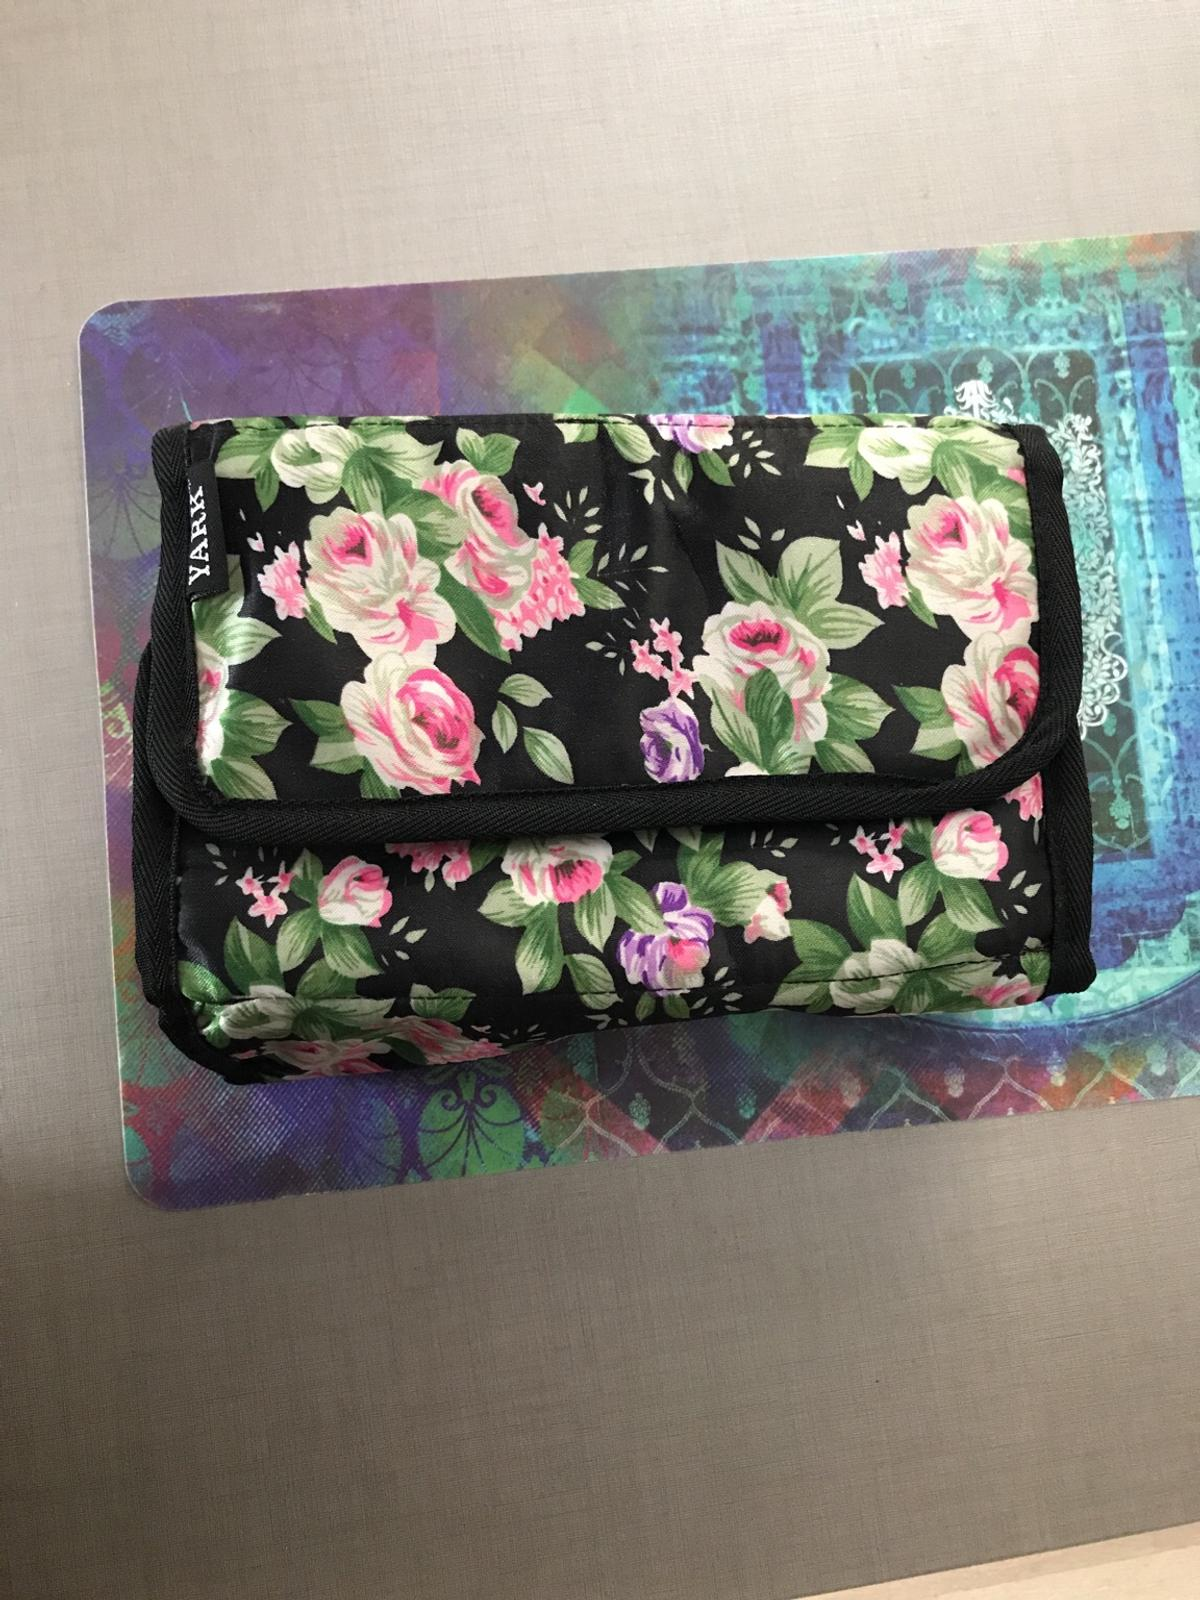 Floral design travel pouch with compartments for jewellery and or makeup. Extremely spacious and protects your things due to unique design!